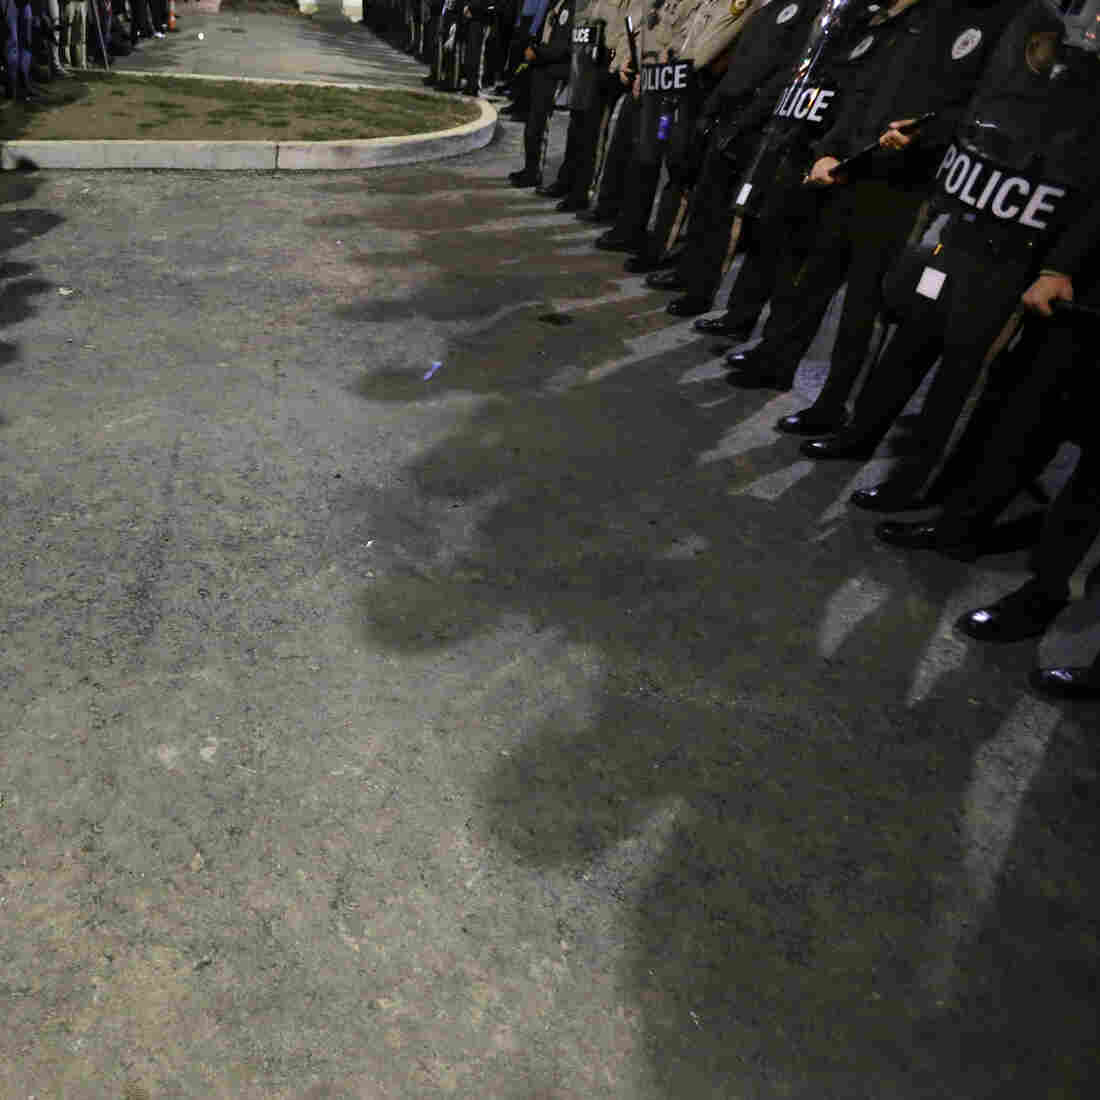 Protesters and law enforcement officers face off during a protest outside the Ferguson Police Department in October. Ferguson police statistics show the department arrest blacks at a higher rate than other racial groups — but that disparity is true for police departments across the country.